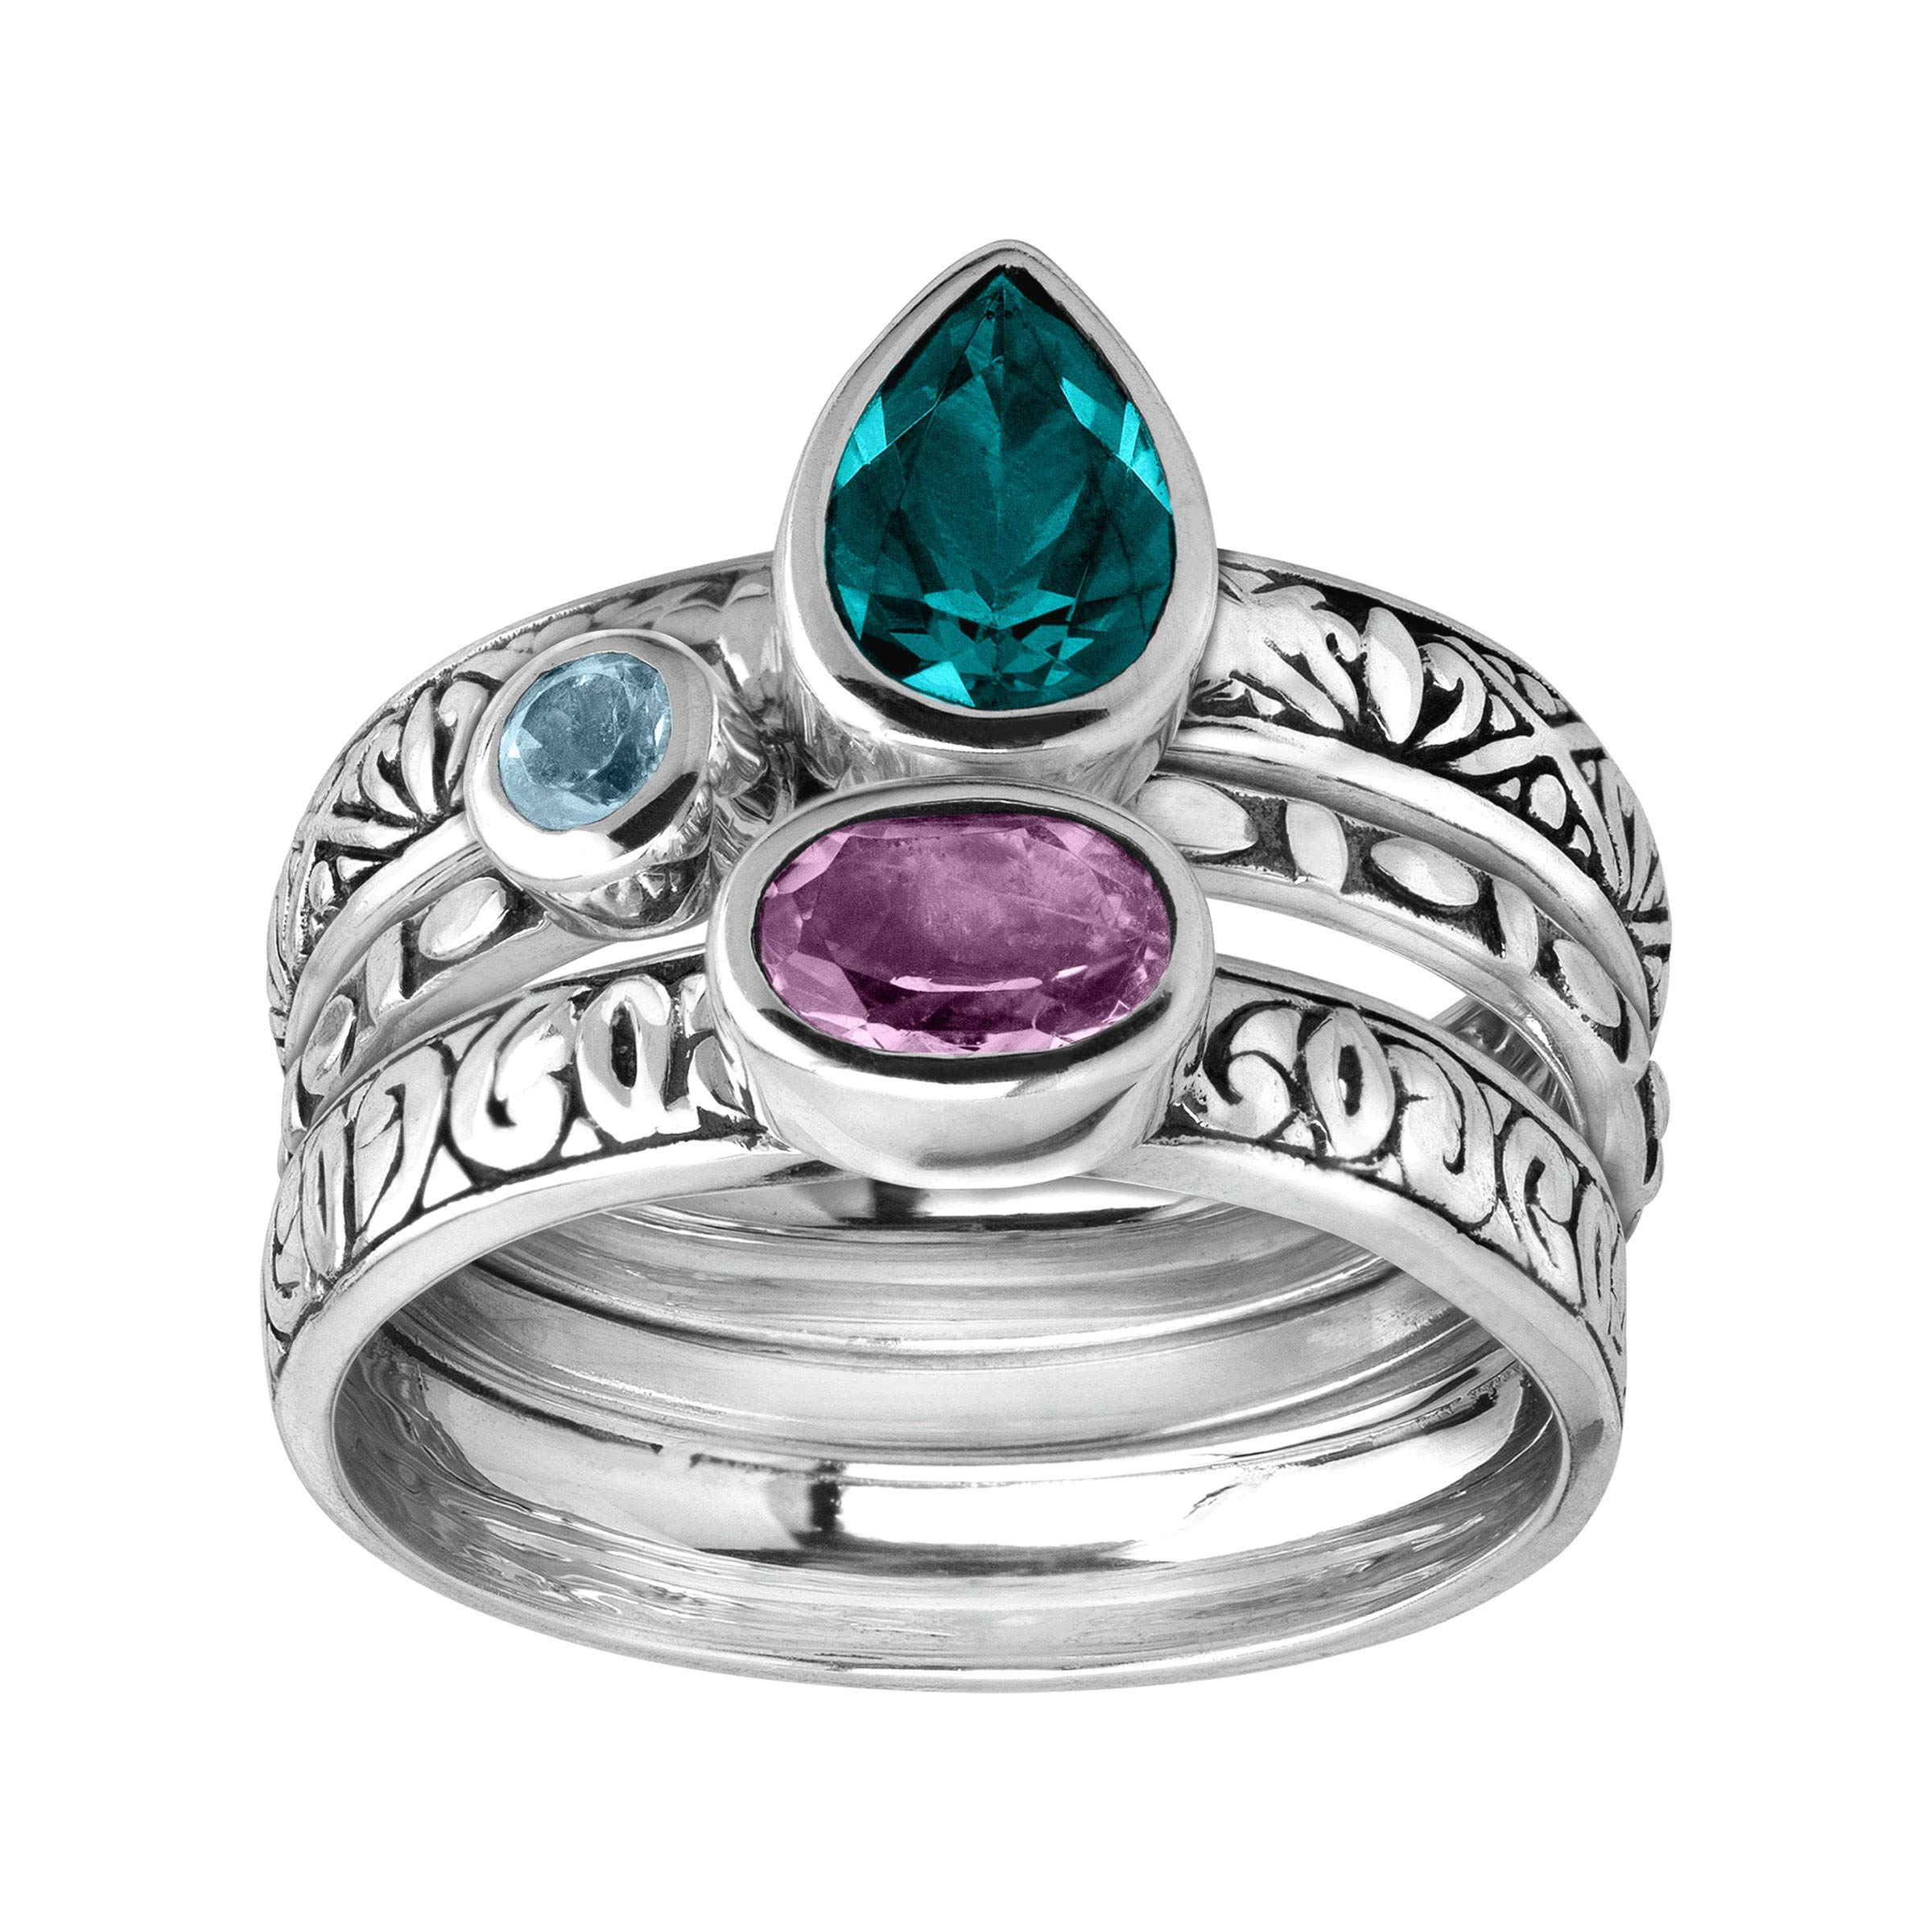 Silpada 'Varsity Hues' Natural Amethyst & Blue Topaz Stacking Rings in Sterling Silver